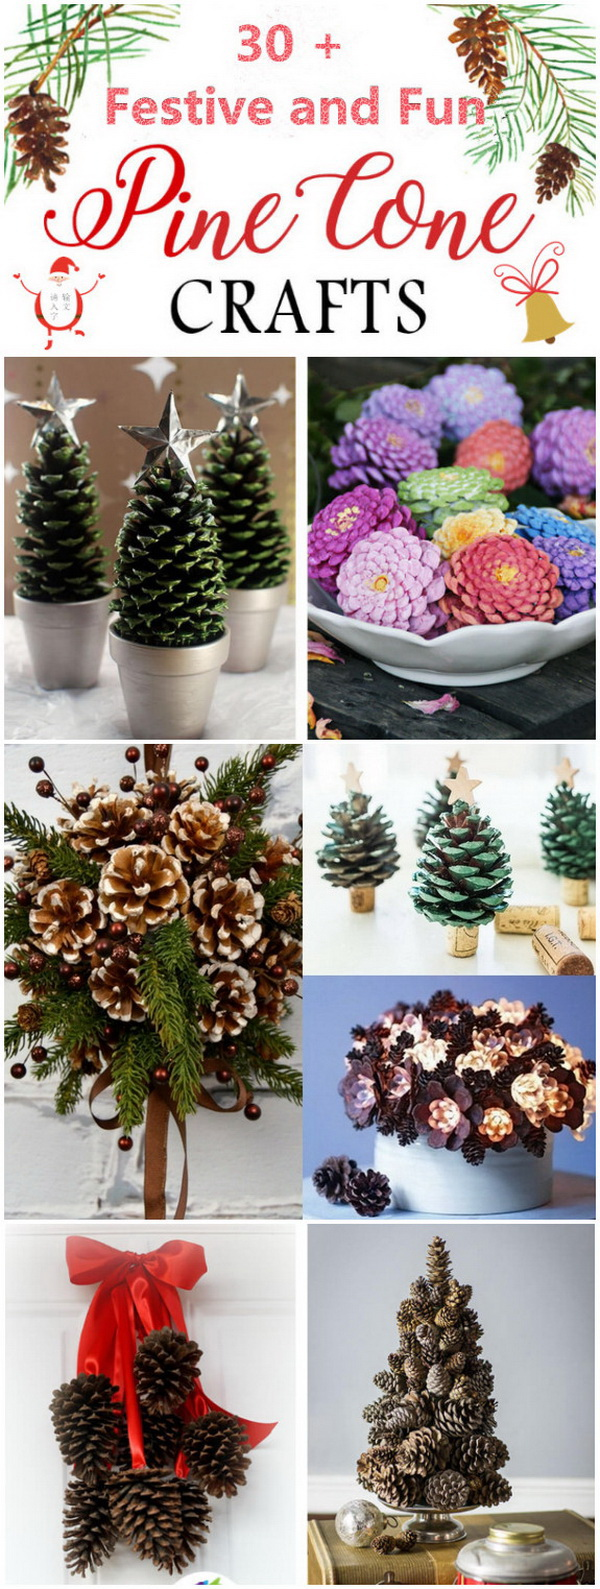 pine cone ideas crafts 30 festive and pine cone crafts listing more 5165